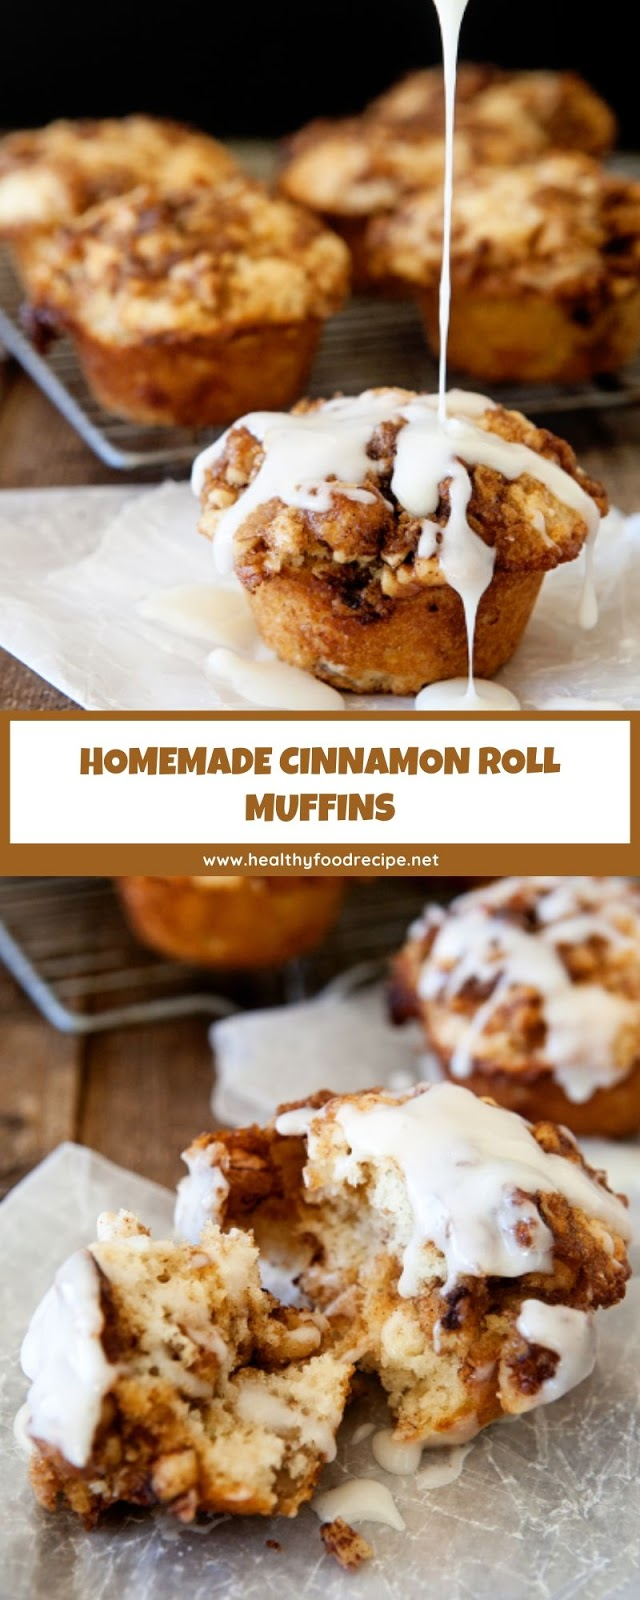 HOMEMADE CINNAMON ROLL MUFFINS